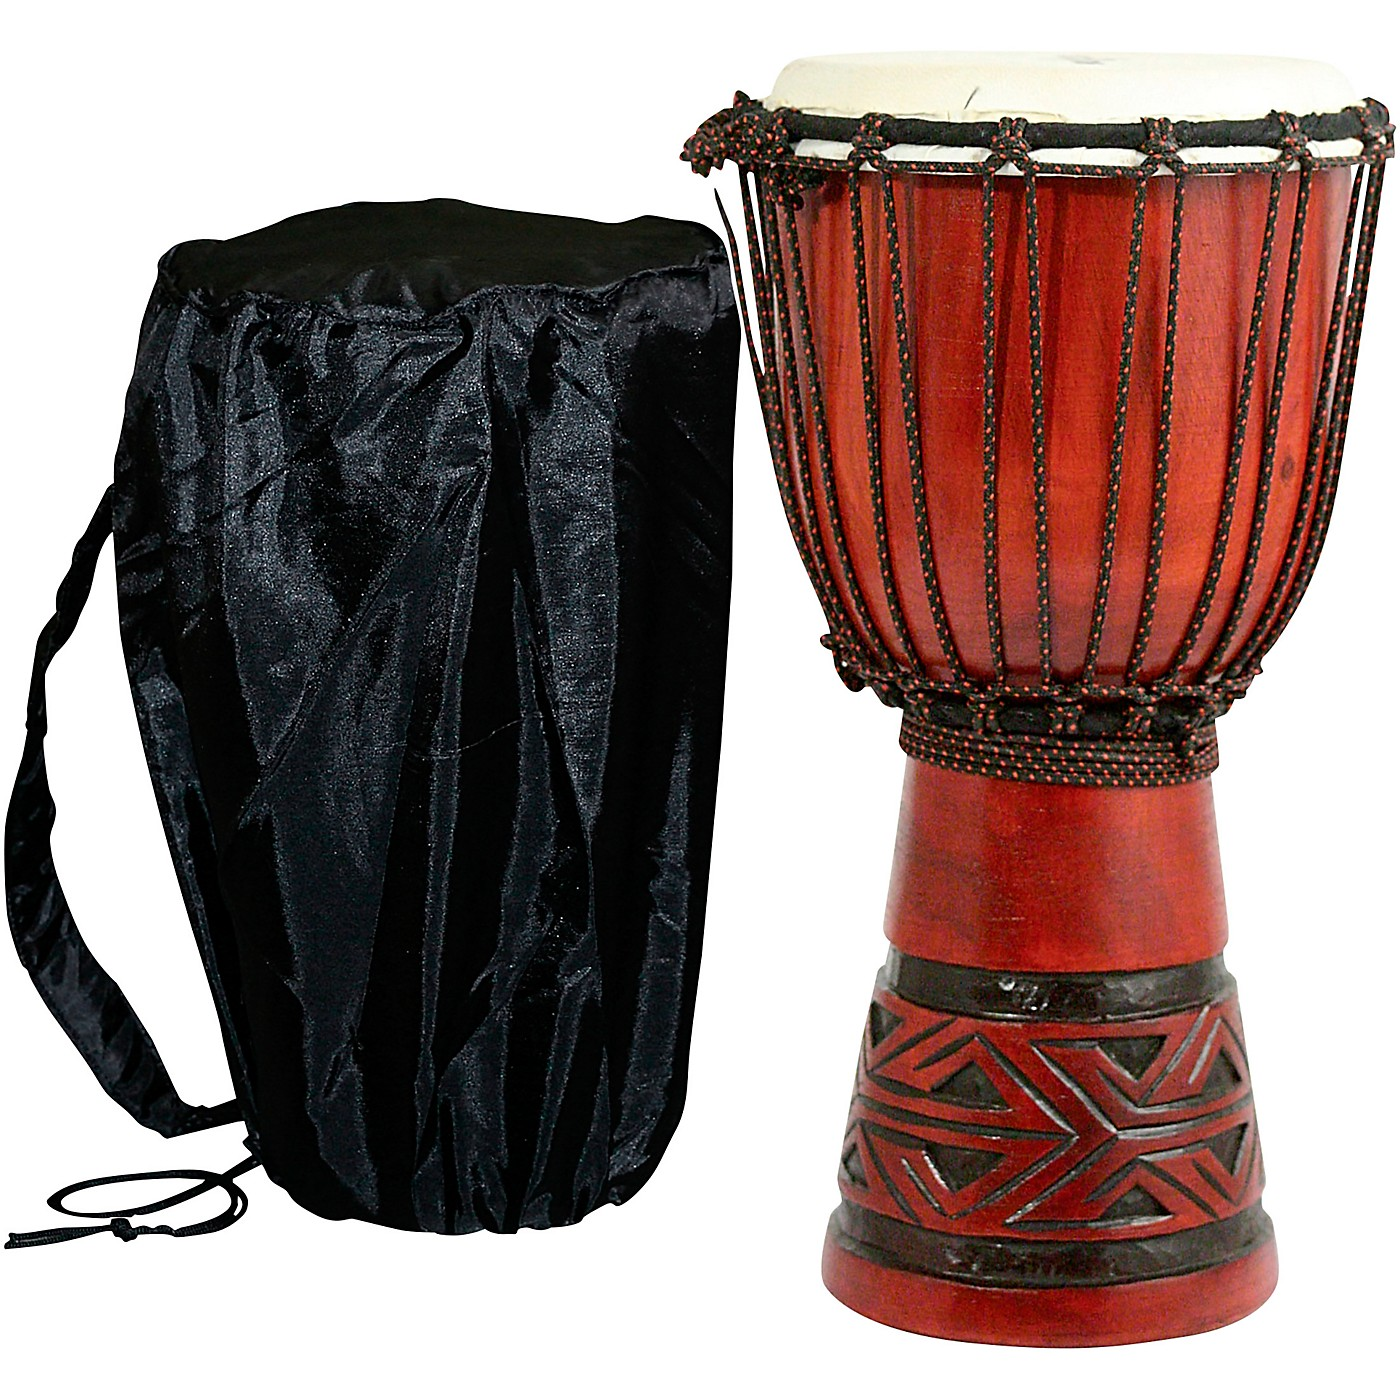 X8 Drums Celtic Labyrinth Djembe Drum thumbnail